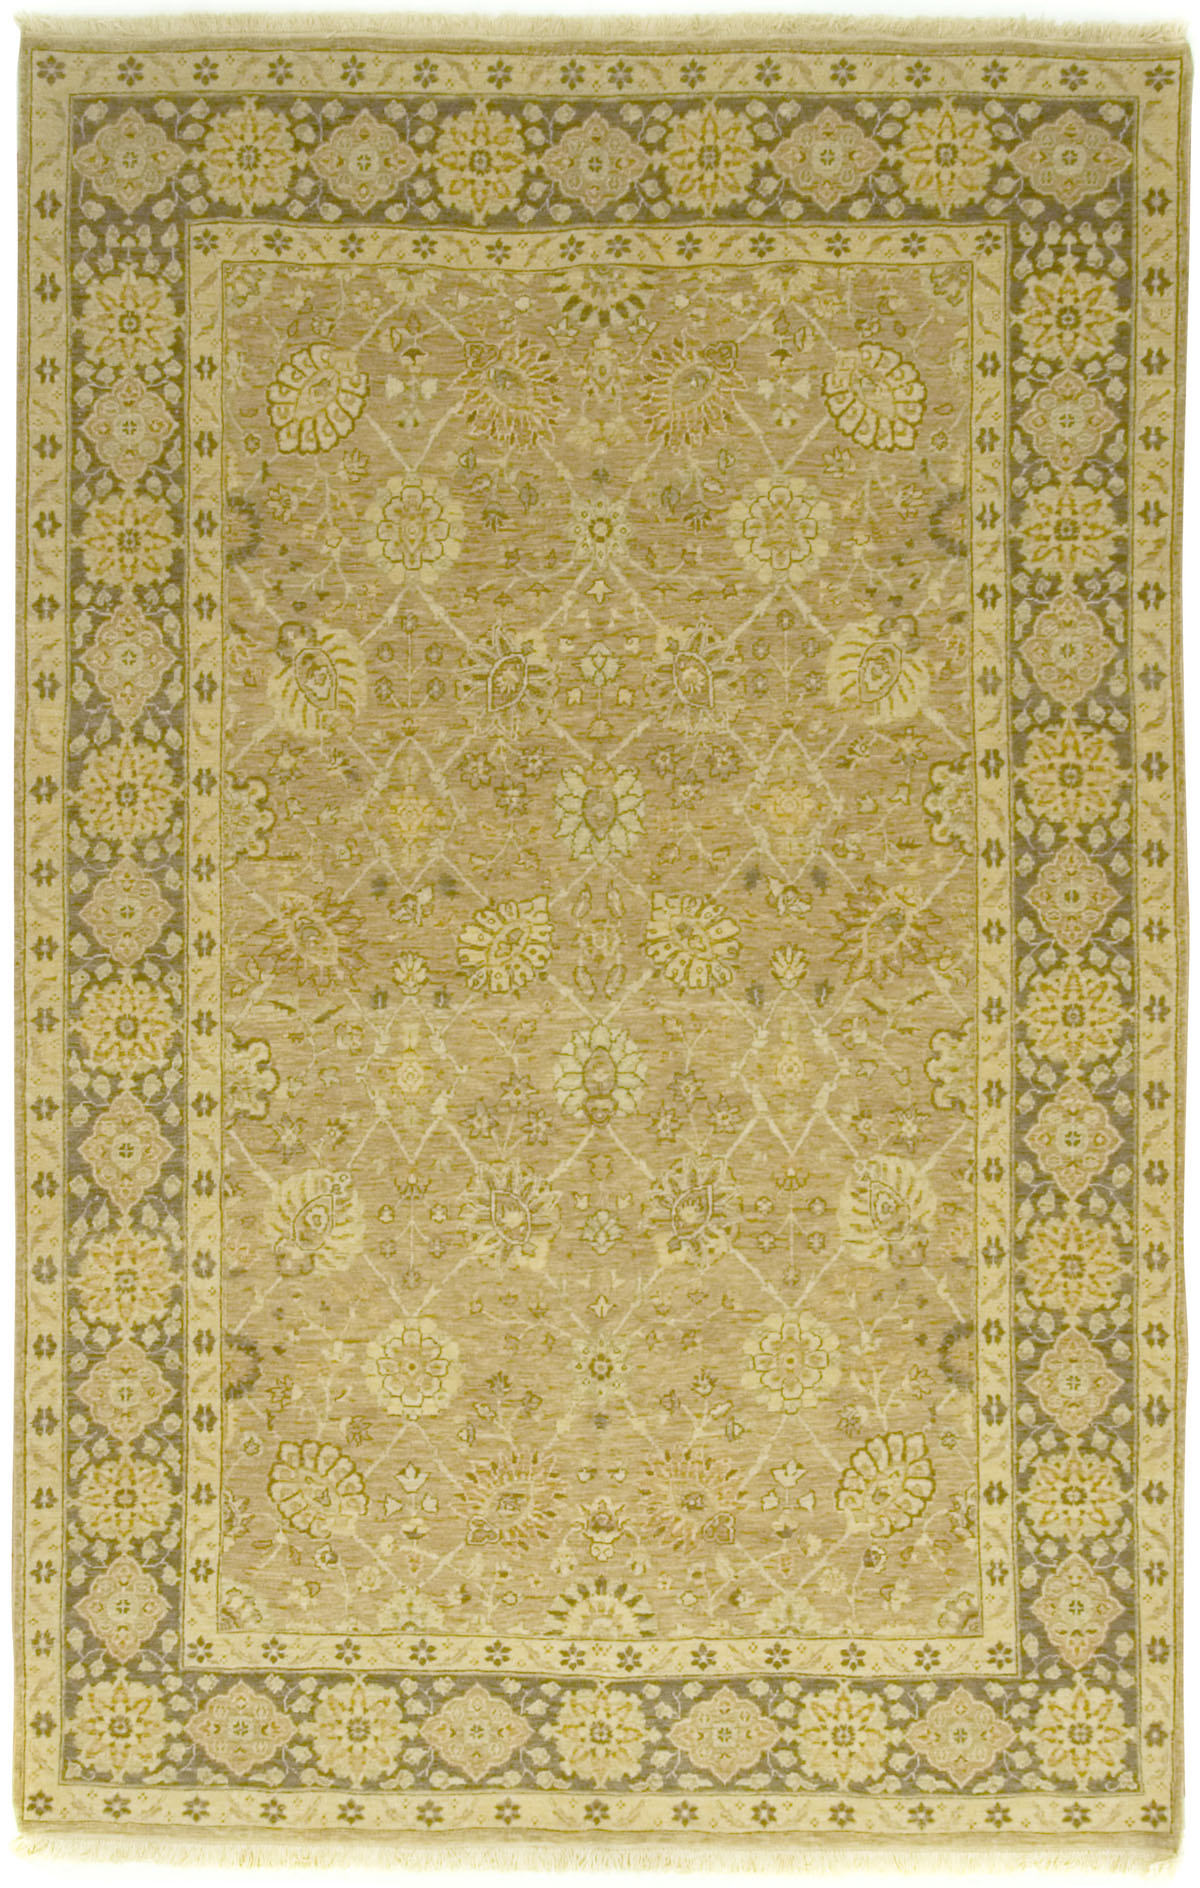 Creative Collection - Tabriz Garous Design Rug